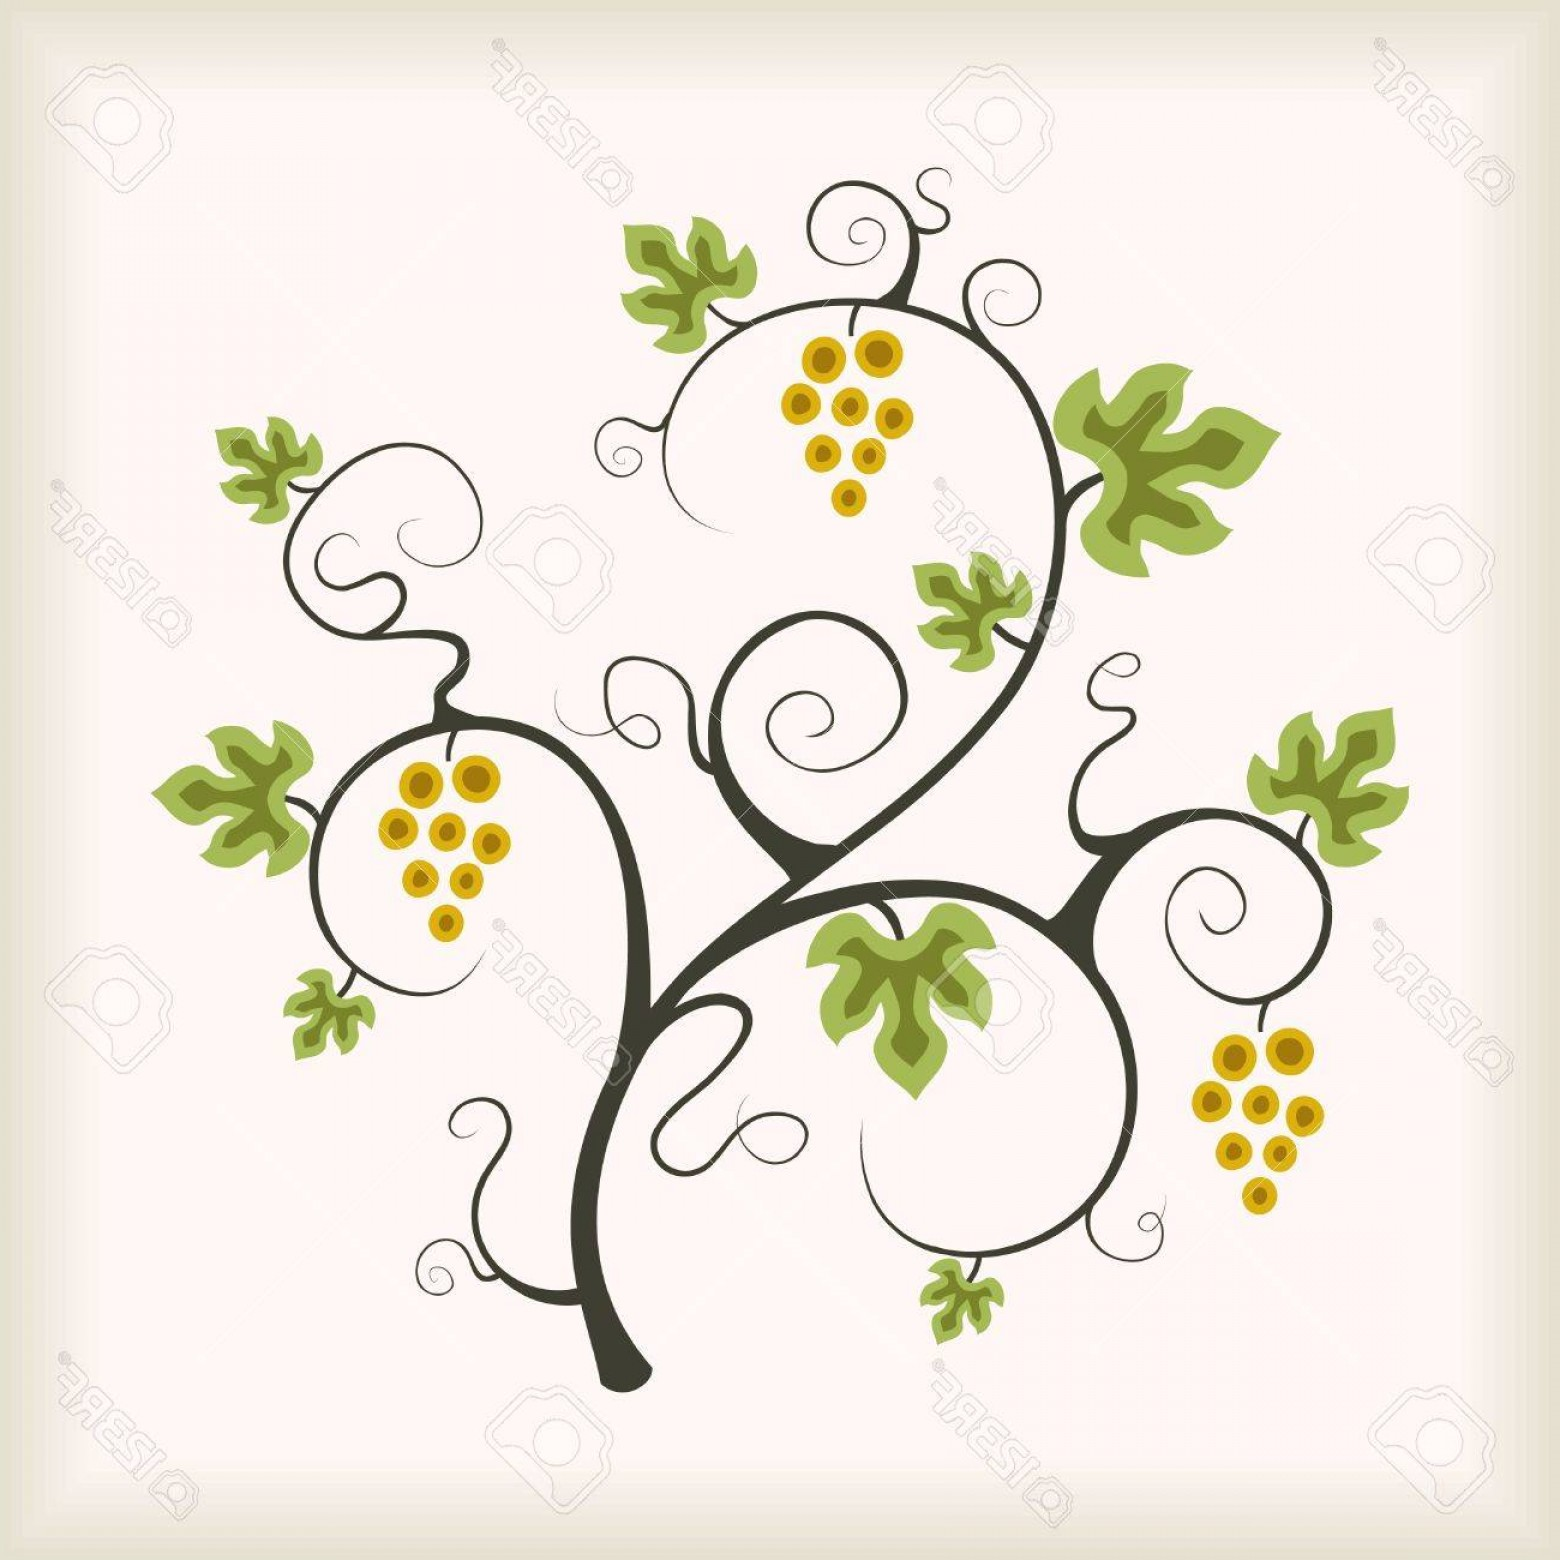 Vector Vine Tree: Photobeautiful Grape Vine Tree Vector Illustration